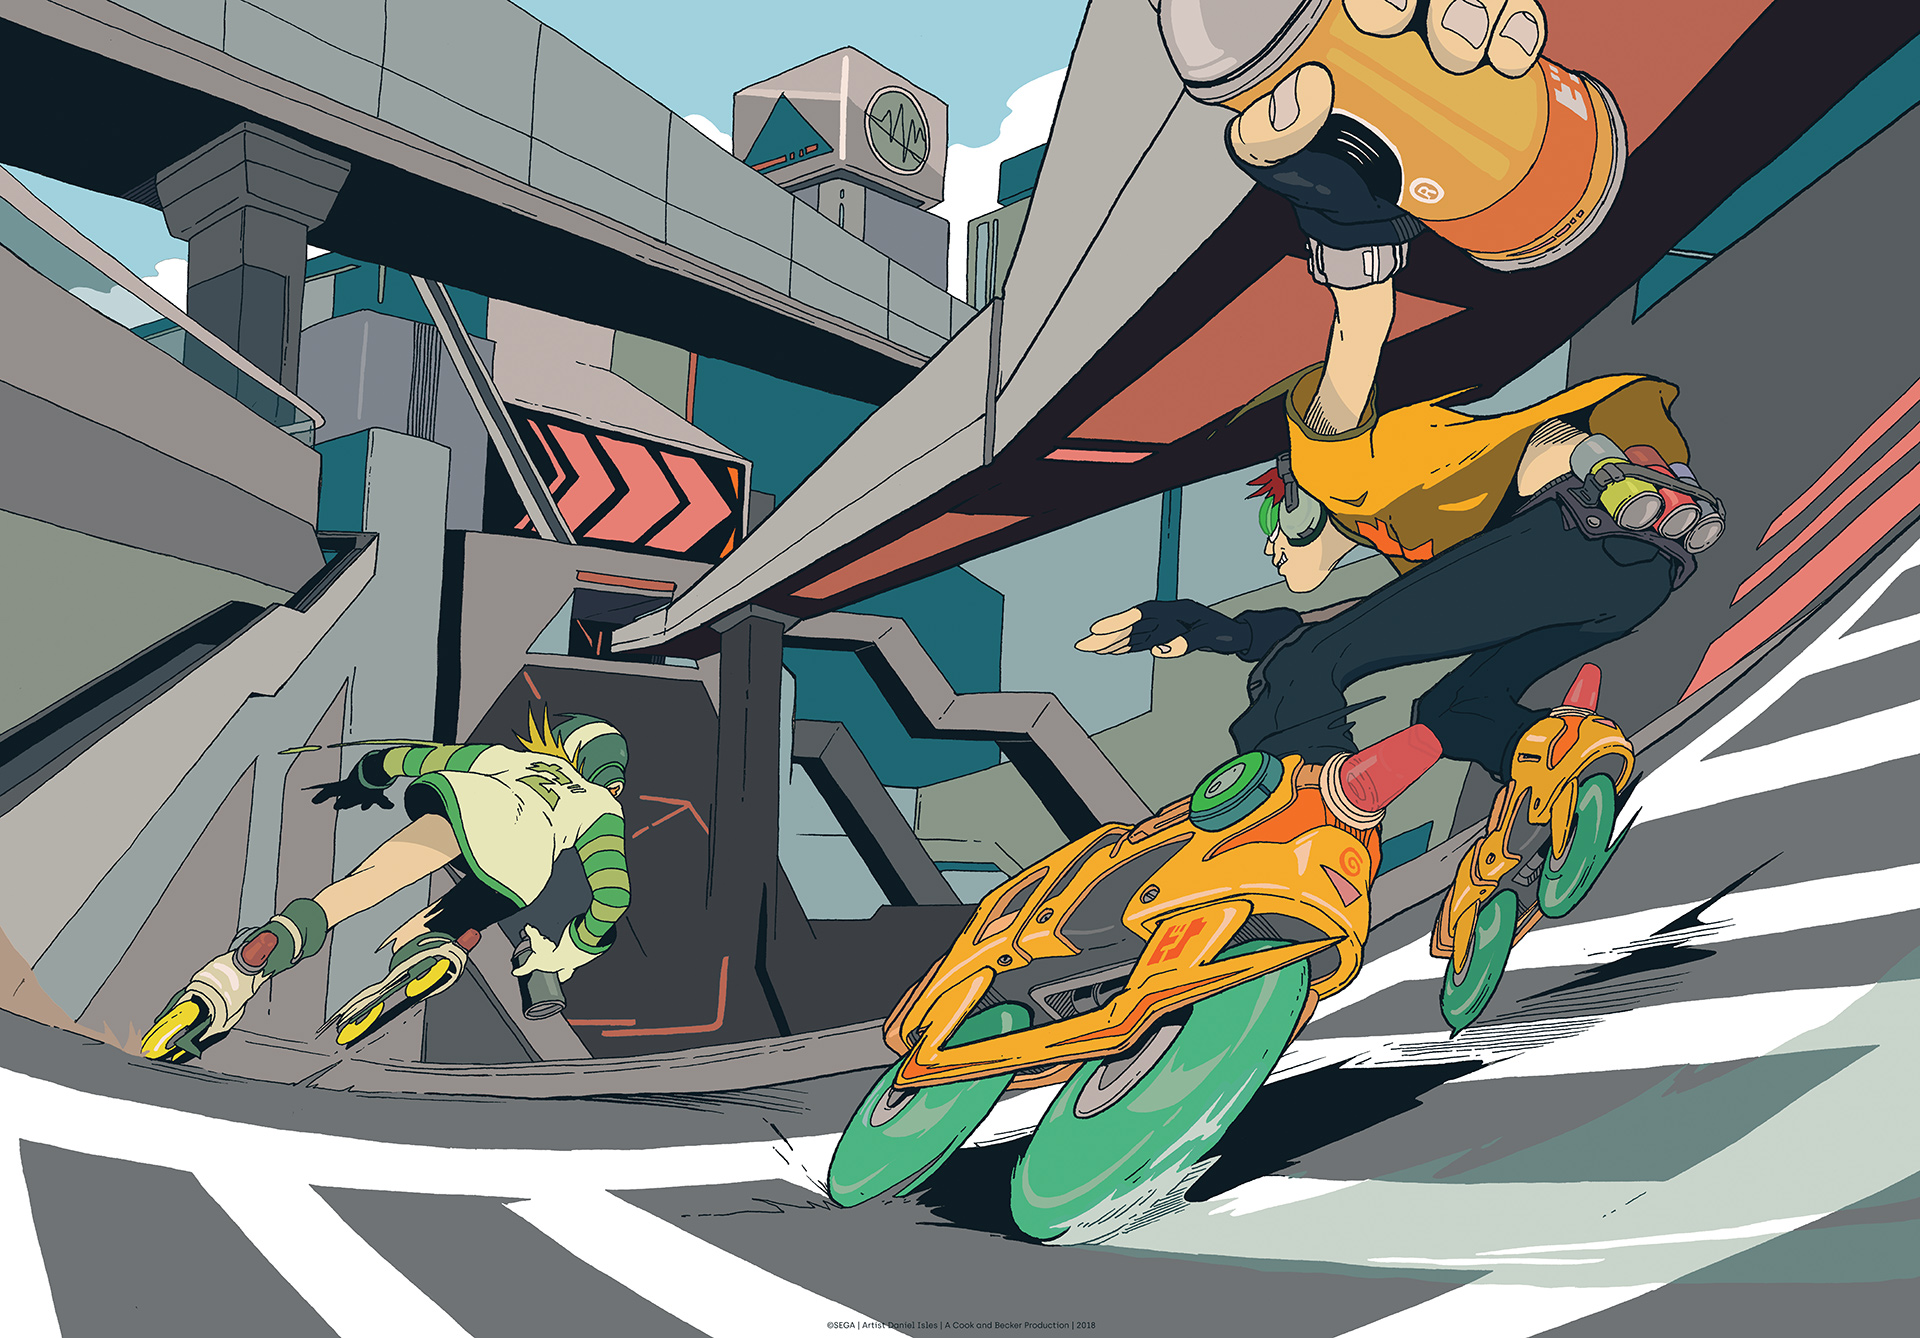 Artwork Jet Set Radio 2018 Jet Set Radio Daniel Isles Cook